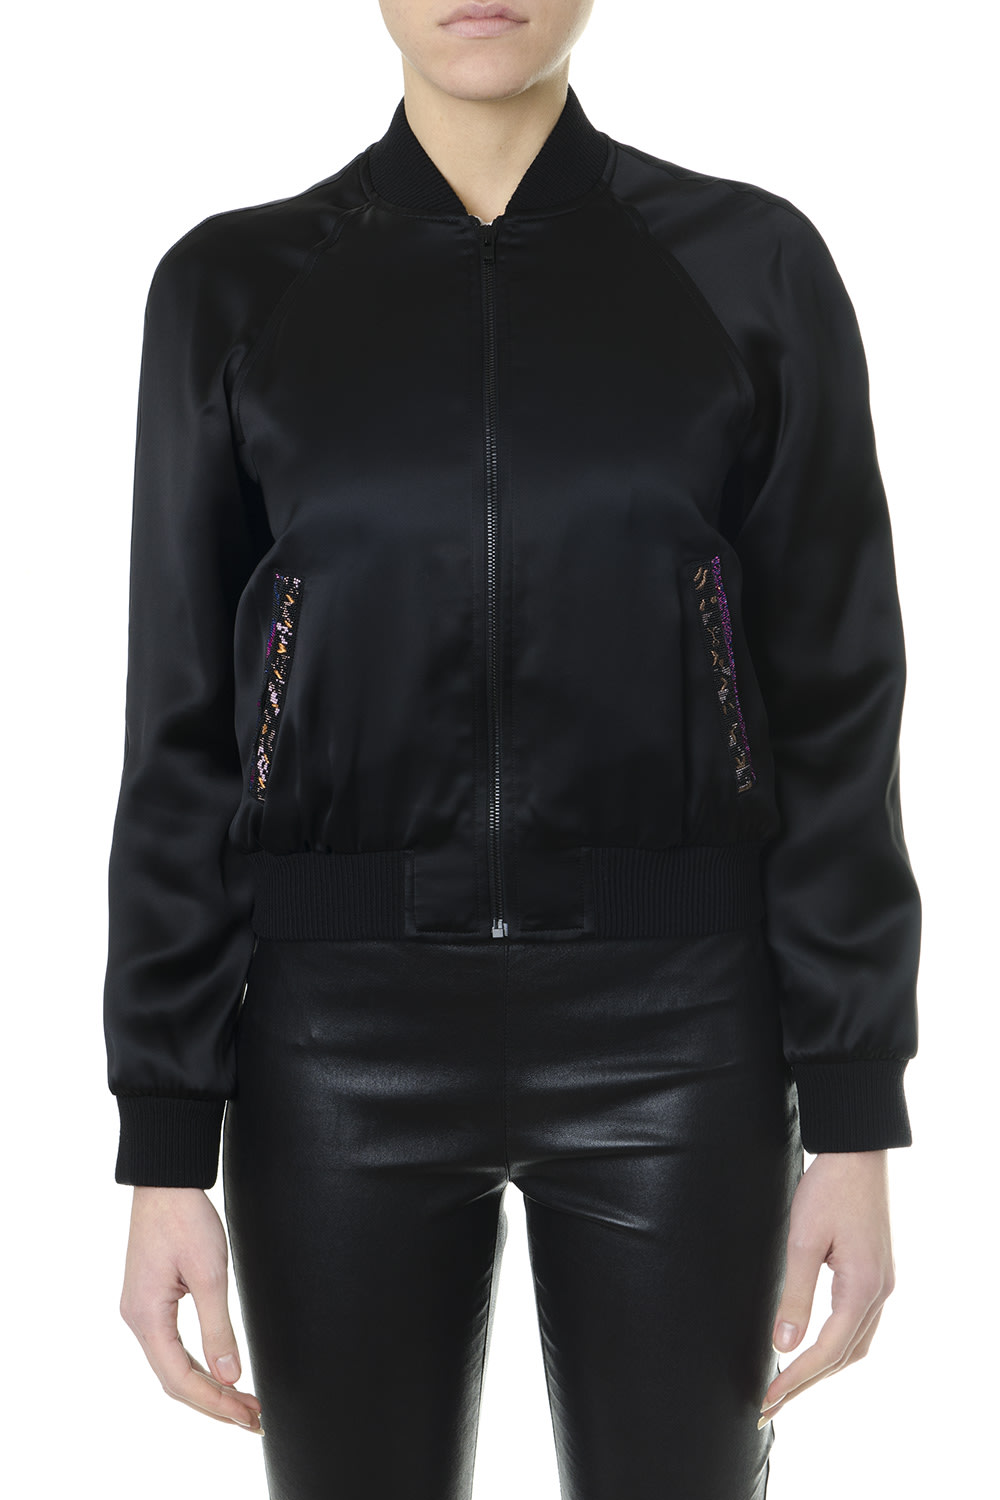 Saint Laurent Black Satin Padded Bomber Jacket With Saint Laurent Embroidery